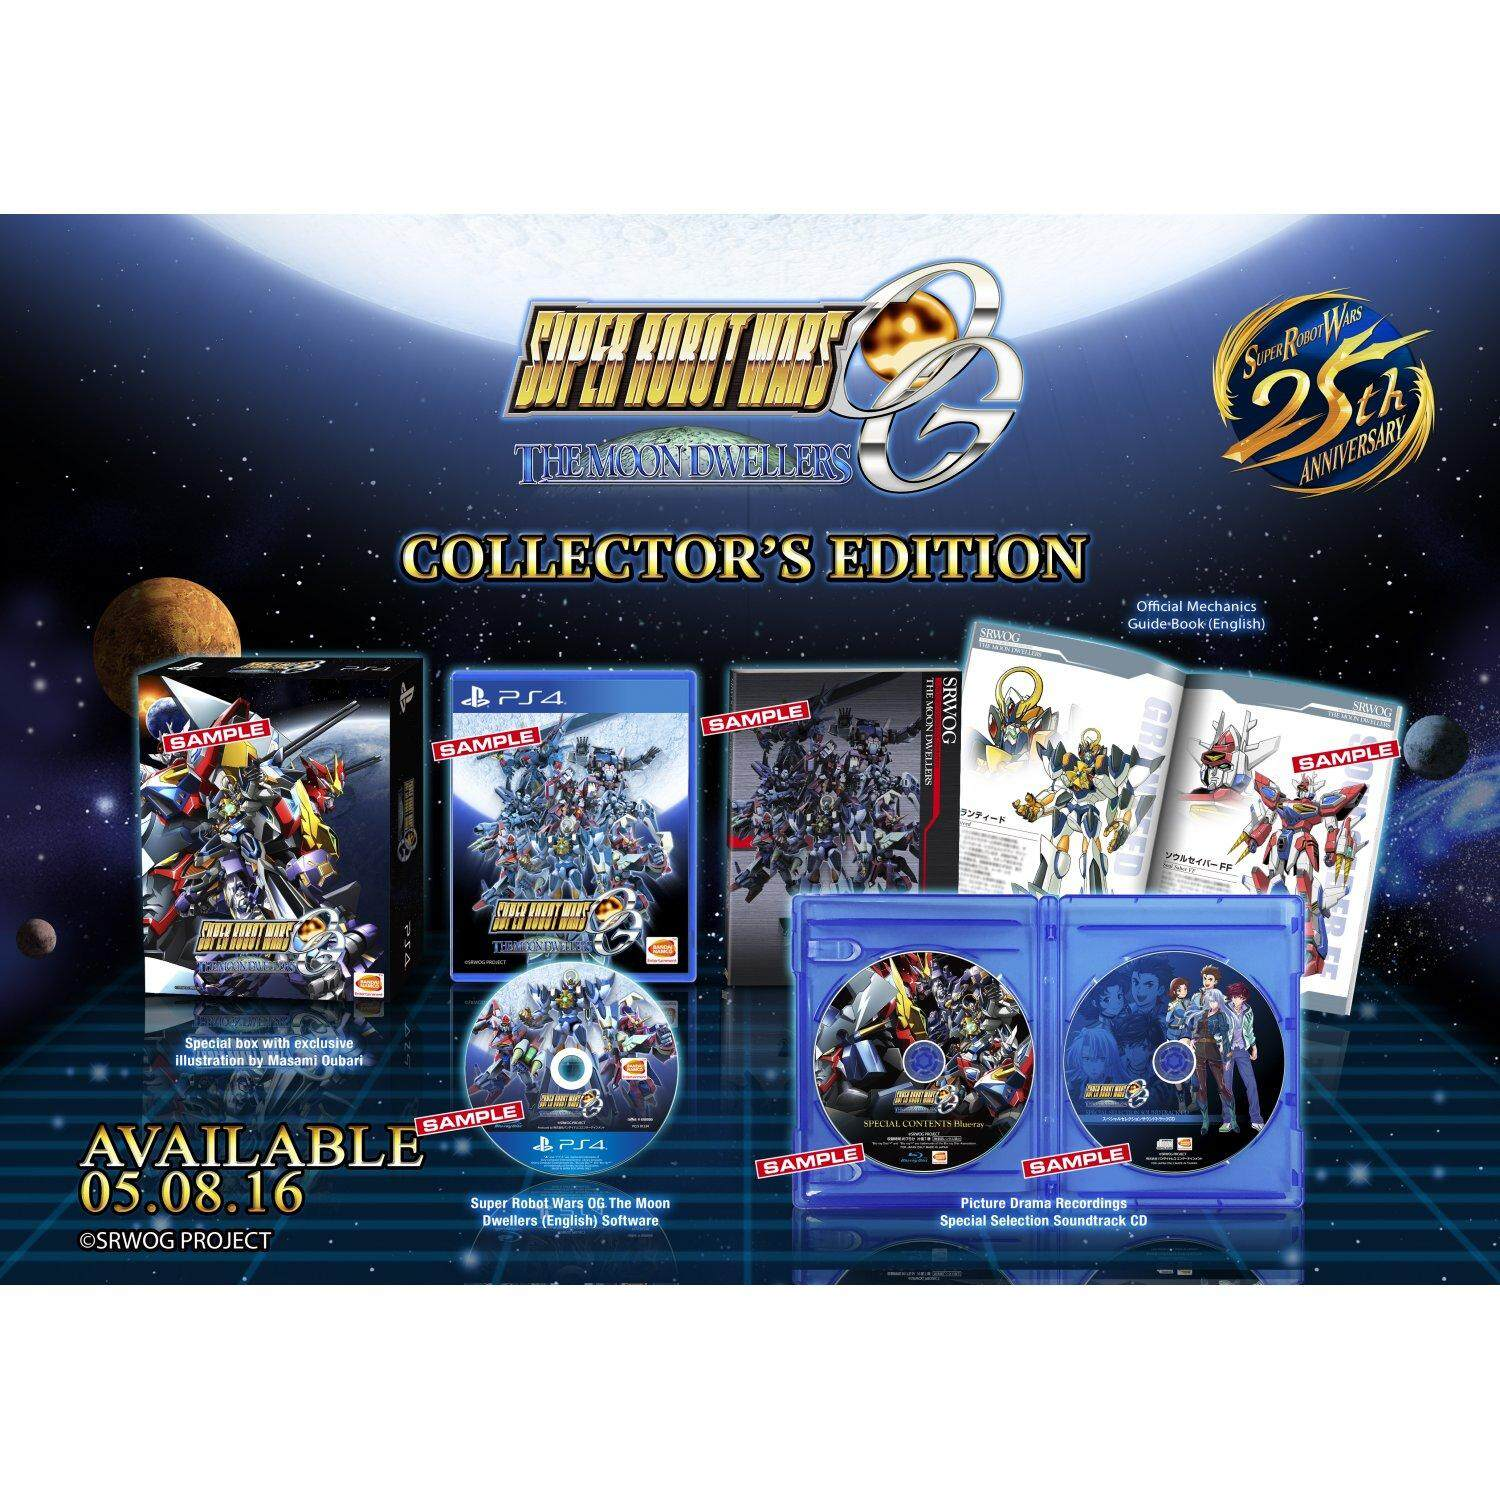 PS4 SUPER ROBOT WARS OG: THE MOON DWELLERS [COLLECTOR'S EDITION] (ENGLISH) (ASIA)